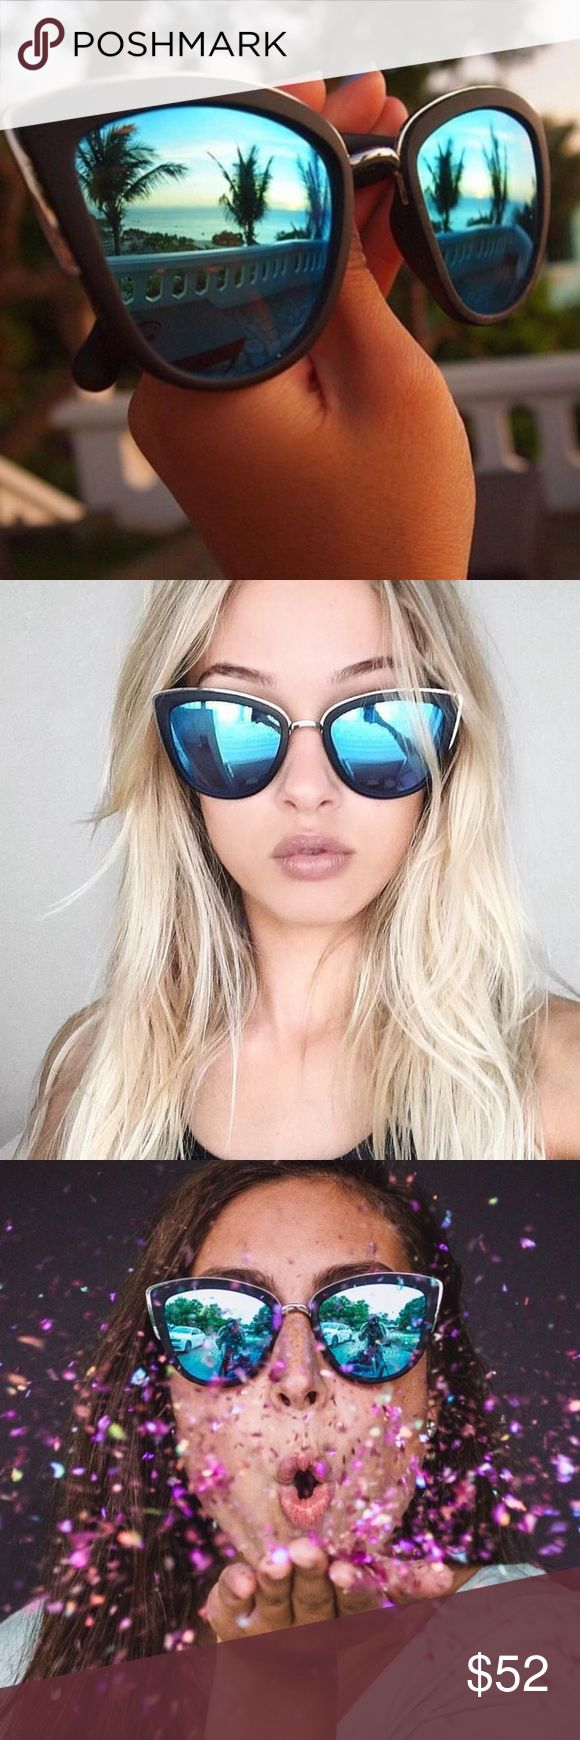 Quay Australia My Girl Sunglasses Blue My Girl sunnies from the innovative hip brand QUAY Australia! These sunglasses have been seen on celebs and the top Instagram models of all time! Shay Mitchell is just one of many who love this style from Quay! Perfect for your next trip to Mexico, or the next music festival. With the blue reflective glass, and super smooth matte black trim you'll be wearing these black and blue Quay sunnies again and again! Quay Australia Accessories Glasses